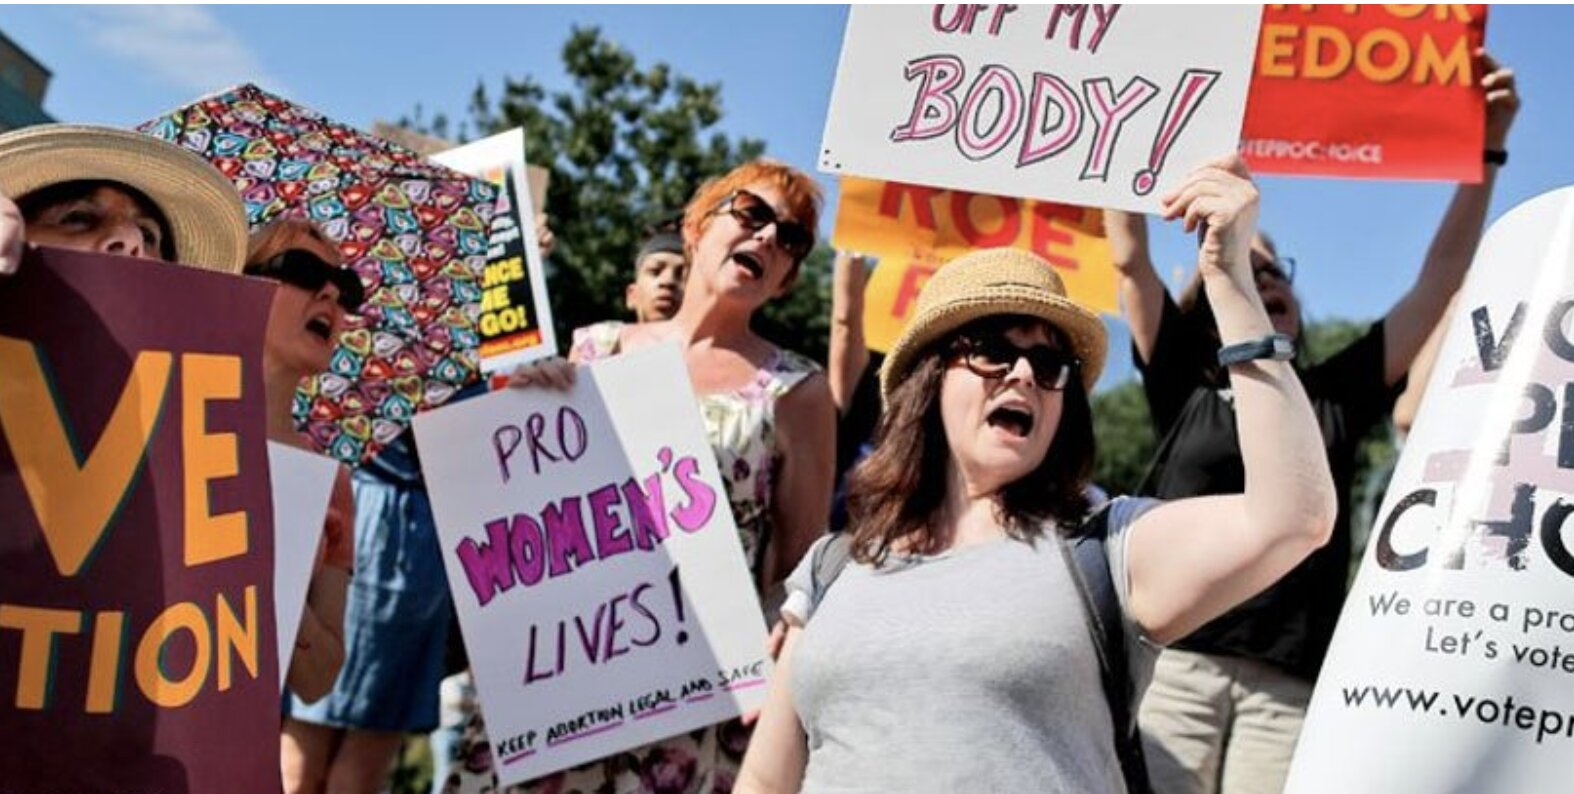 New York legislators codify abortion rights on anniversary of Roe v. Wade decision